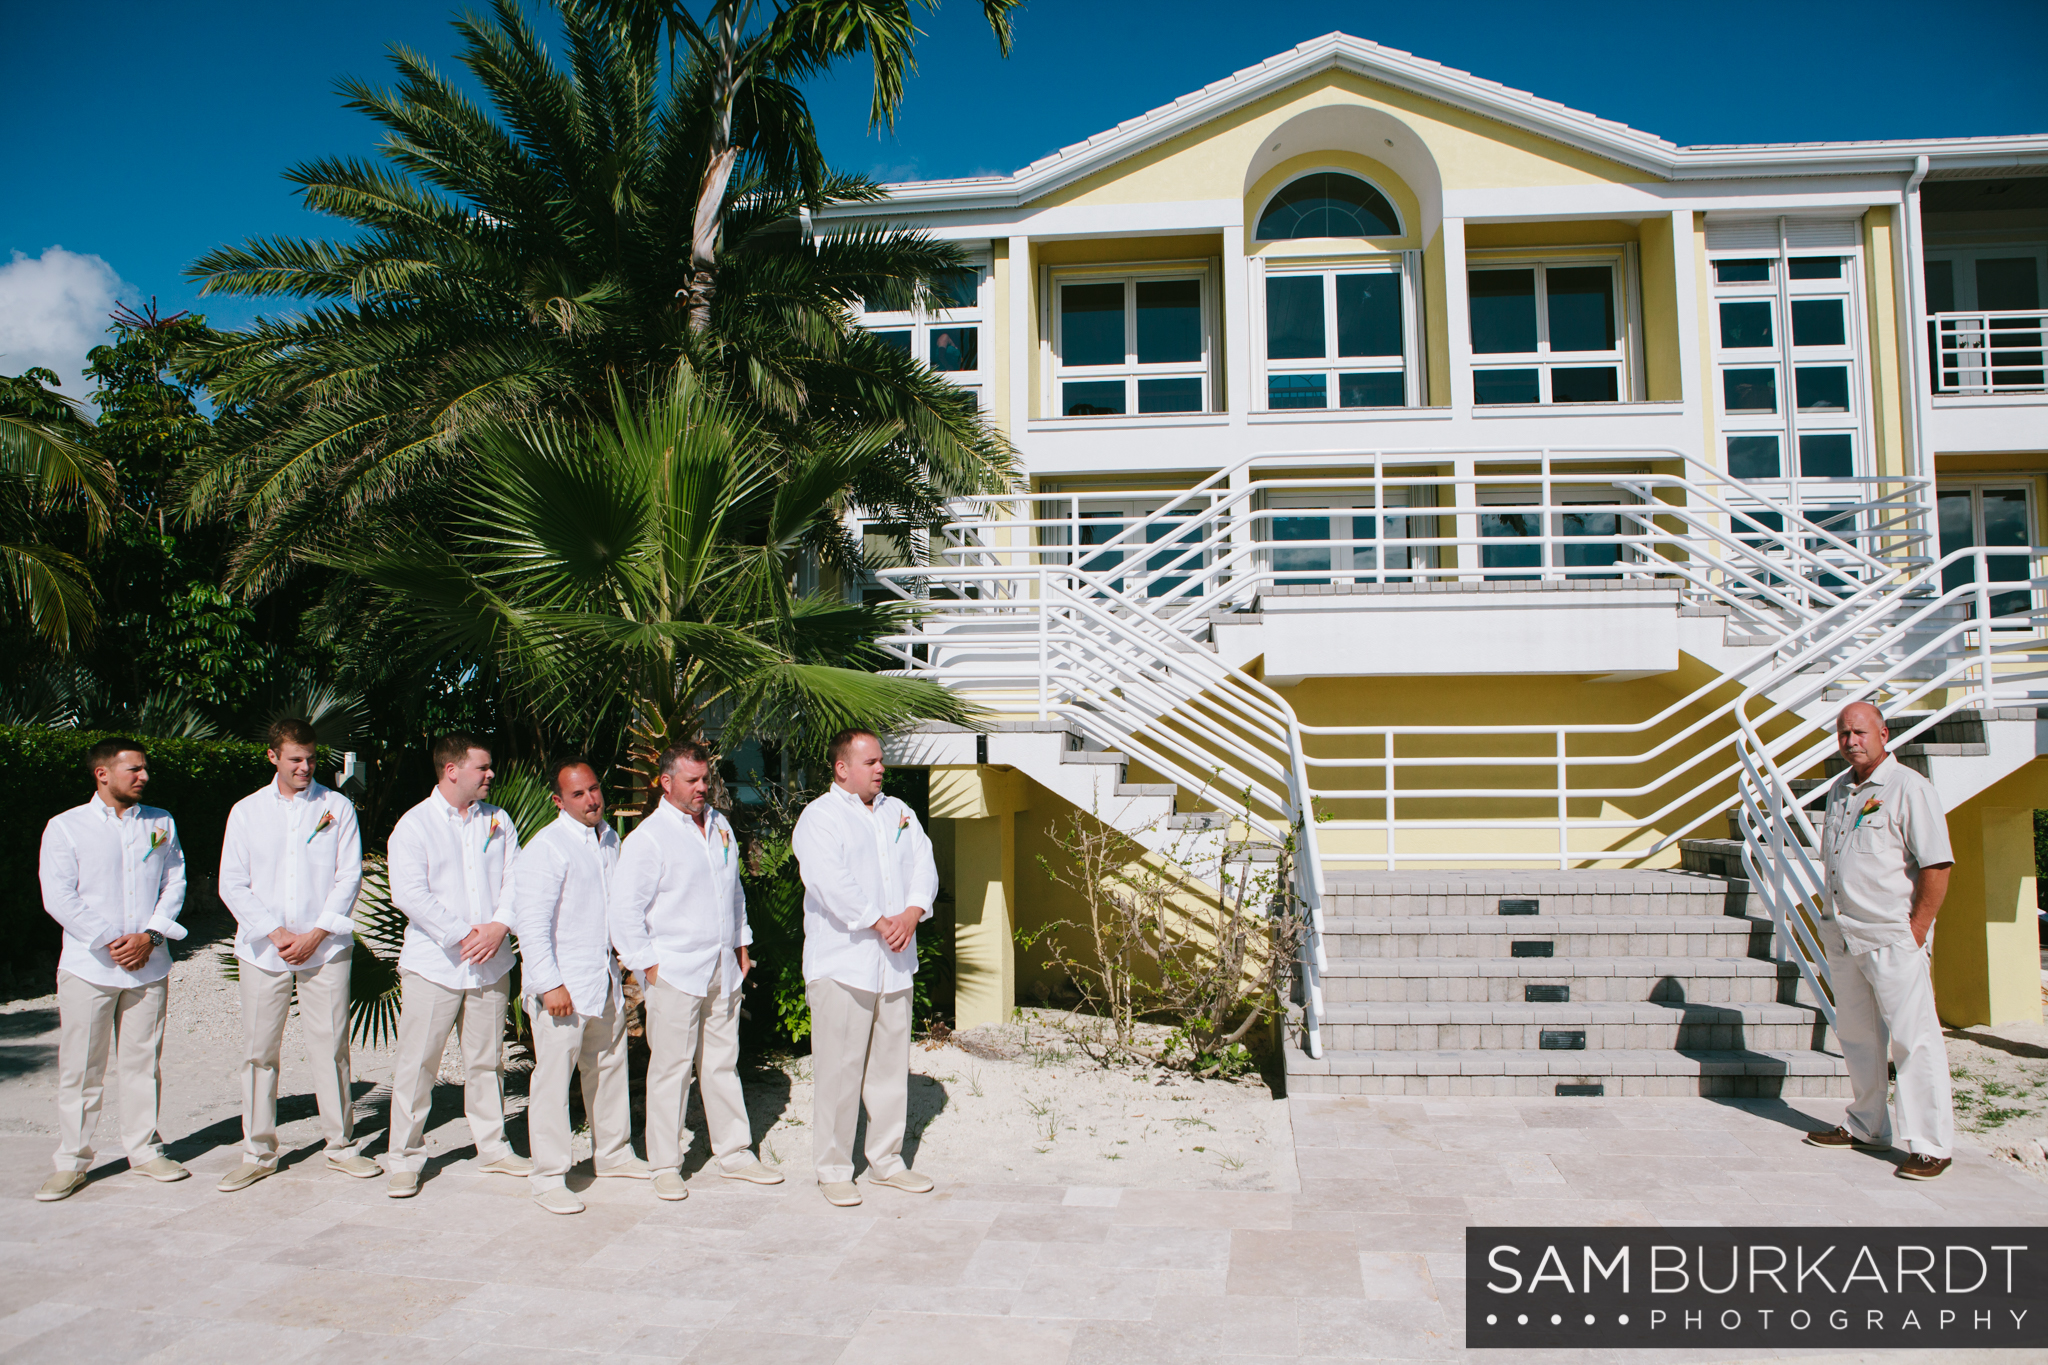 samburkardt_key_west_wedding_marathon_florida_summer_beach_ocean_front_0023.jpg